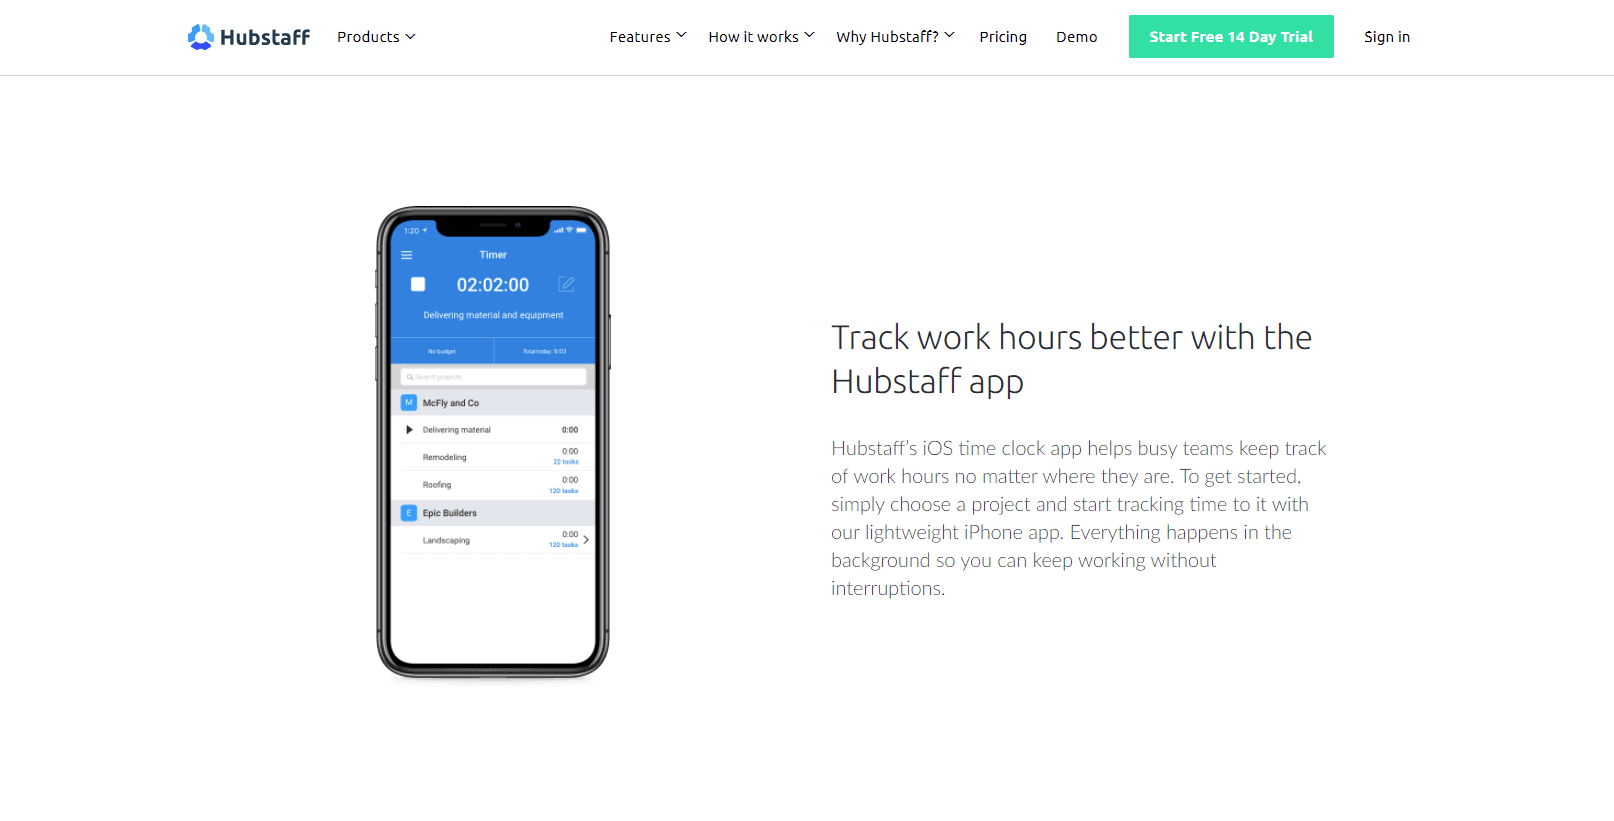 Hubstaff for iOS